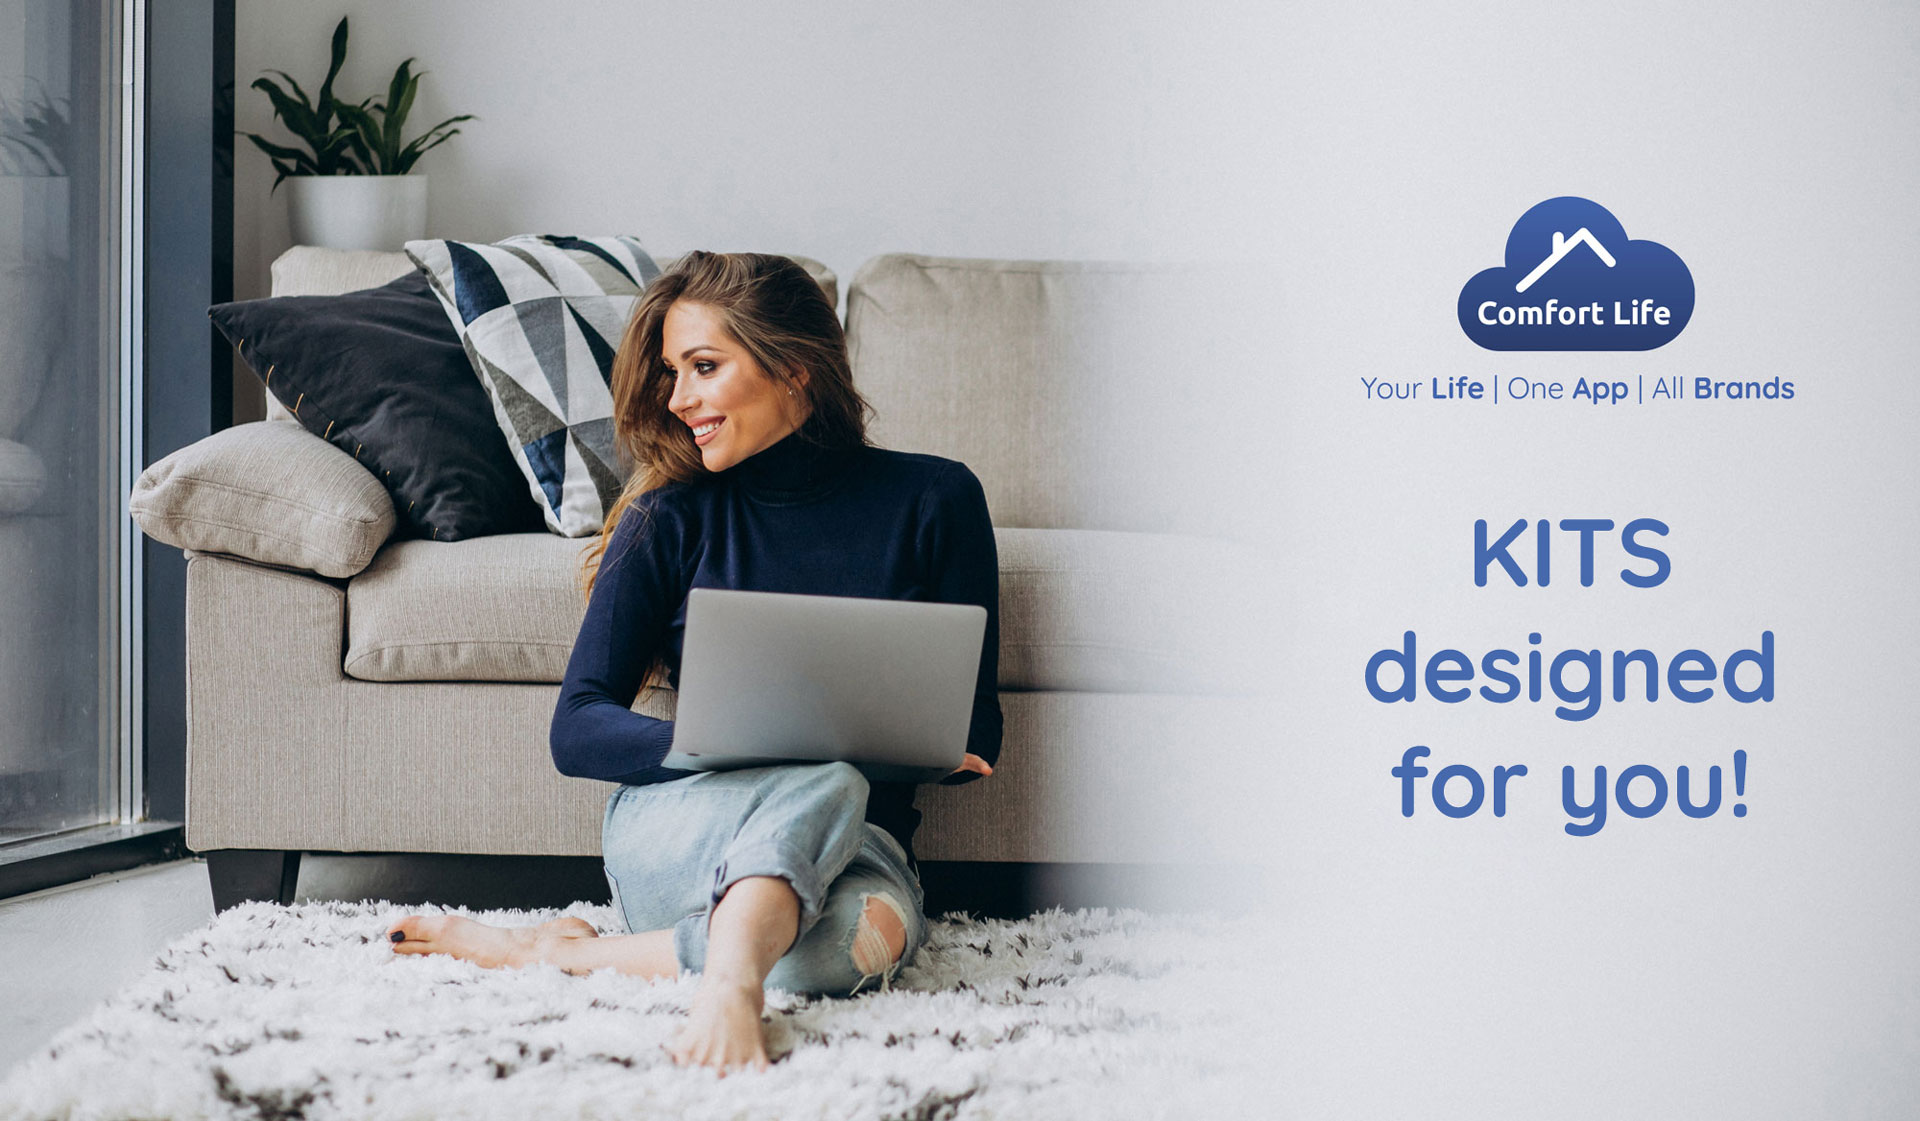 a woman sits on the floor with her laptop to represent the kits comfort life